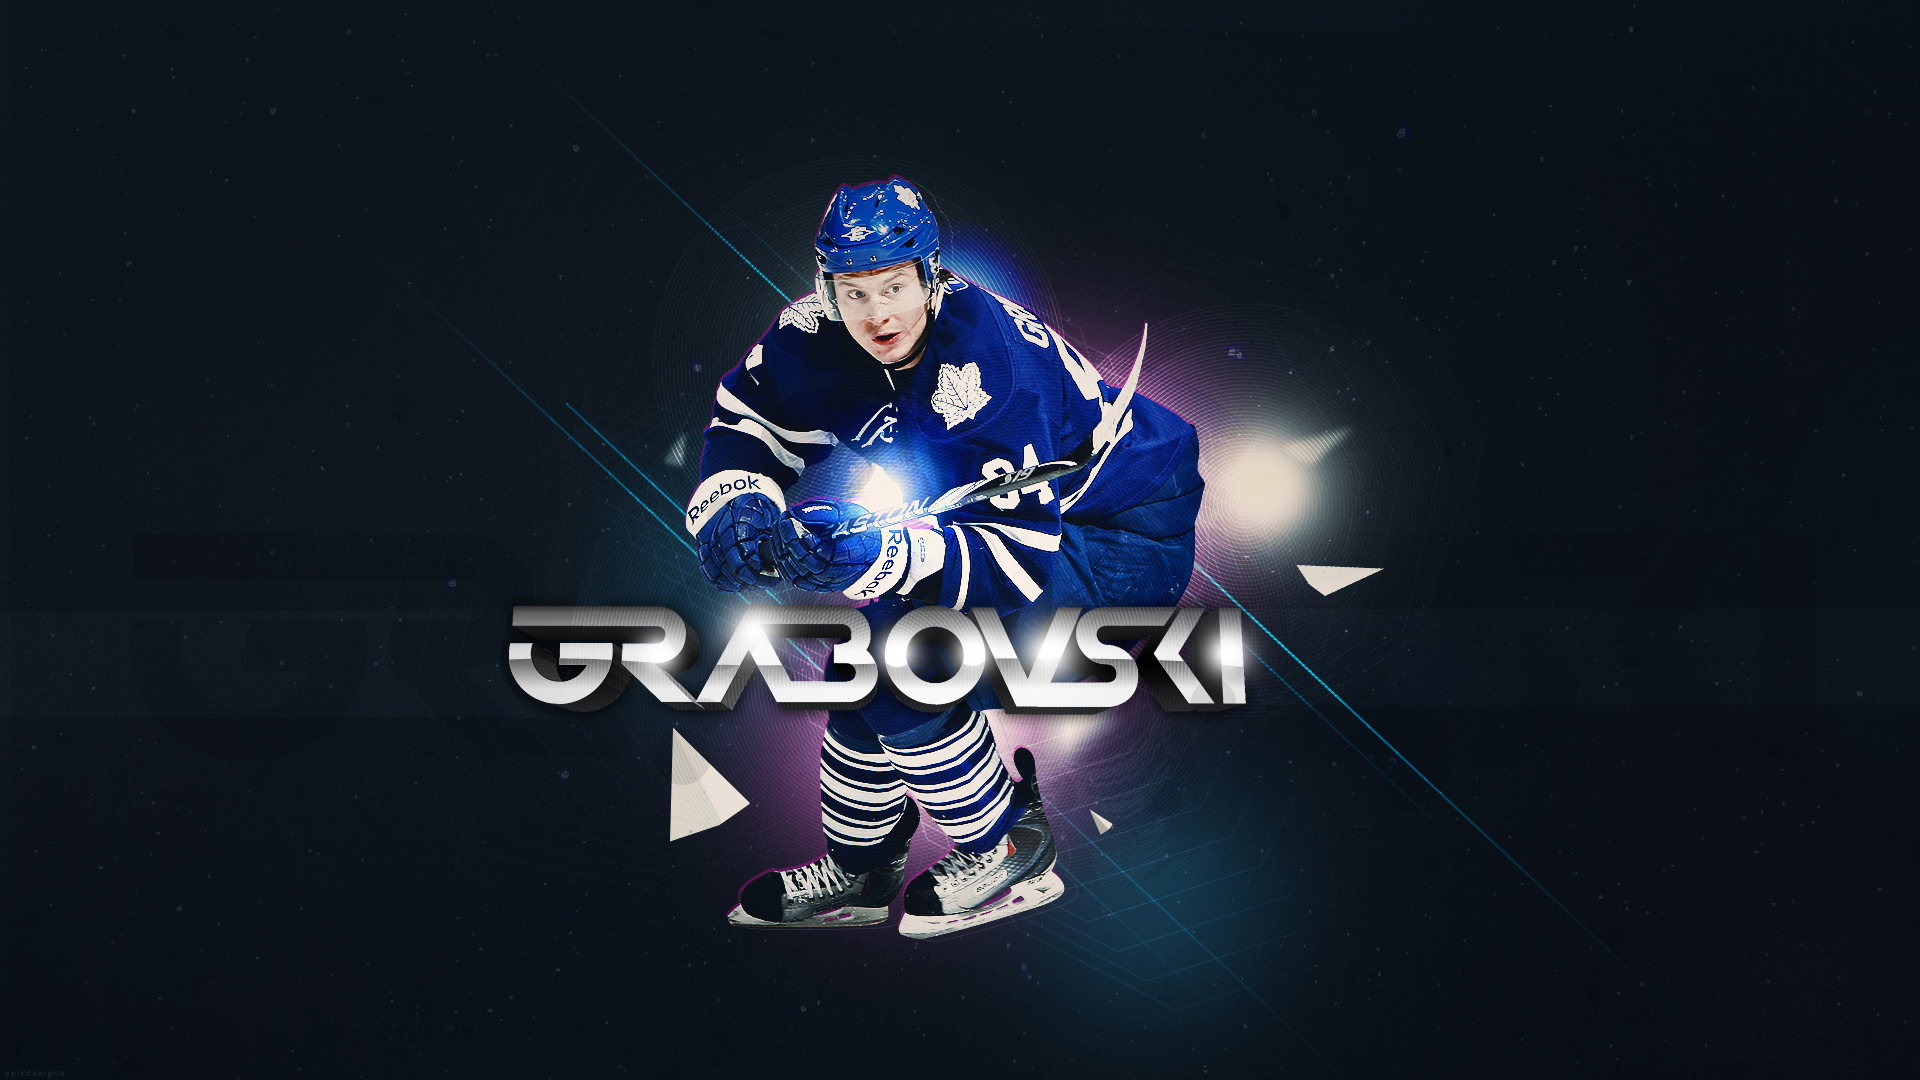 Hockey Mikhail Grabovski Toronto Maple Leafs Wallpaper 1920x1080 128815 Wallpaperup